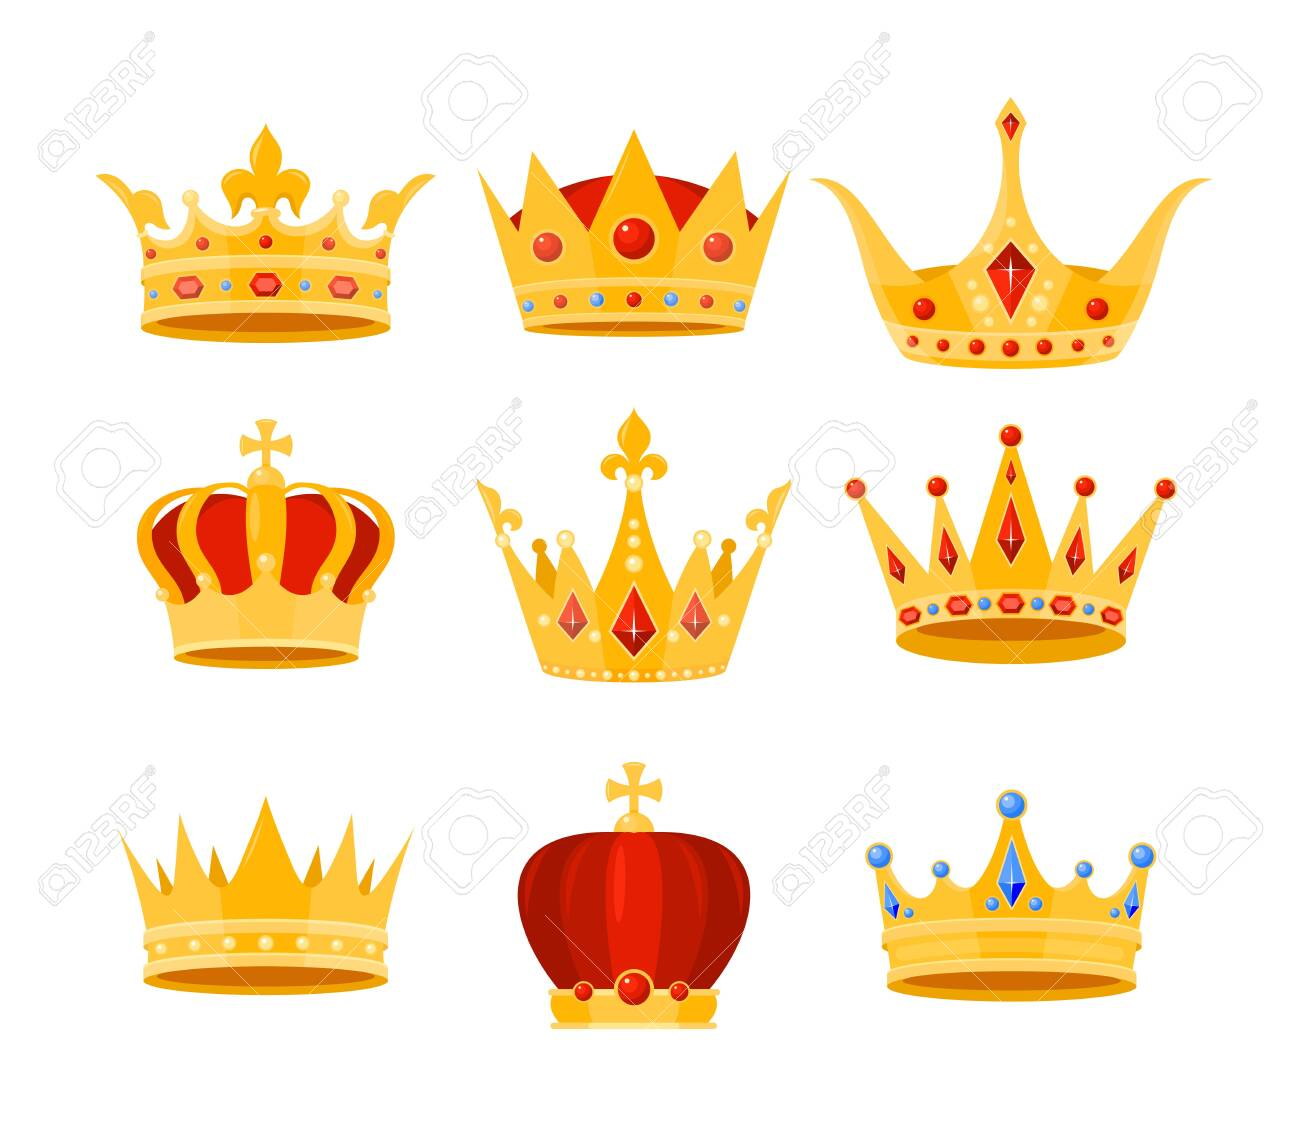 Golden crown vector illustration set. Cartoon flat gold royal medieval collection of luxury monarch crowning jewel headdress for king, emperor or queen, monarchy imperial symbols isolated on white - 151948115